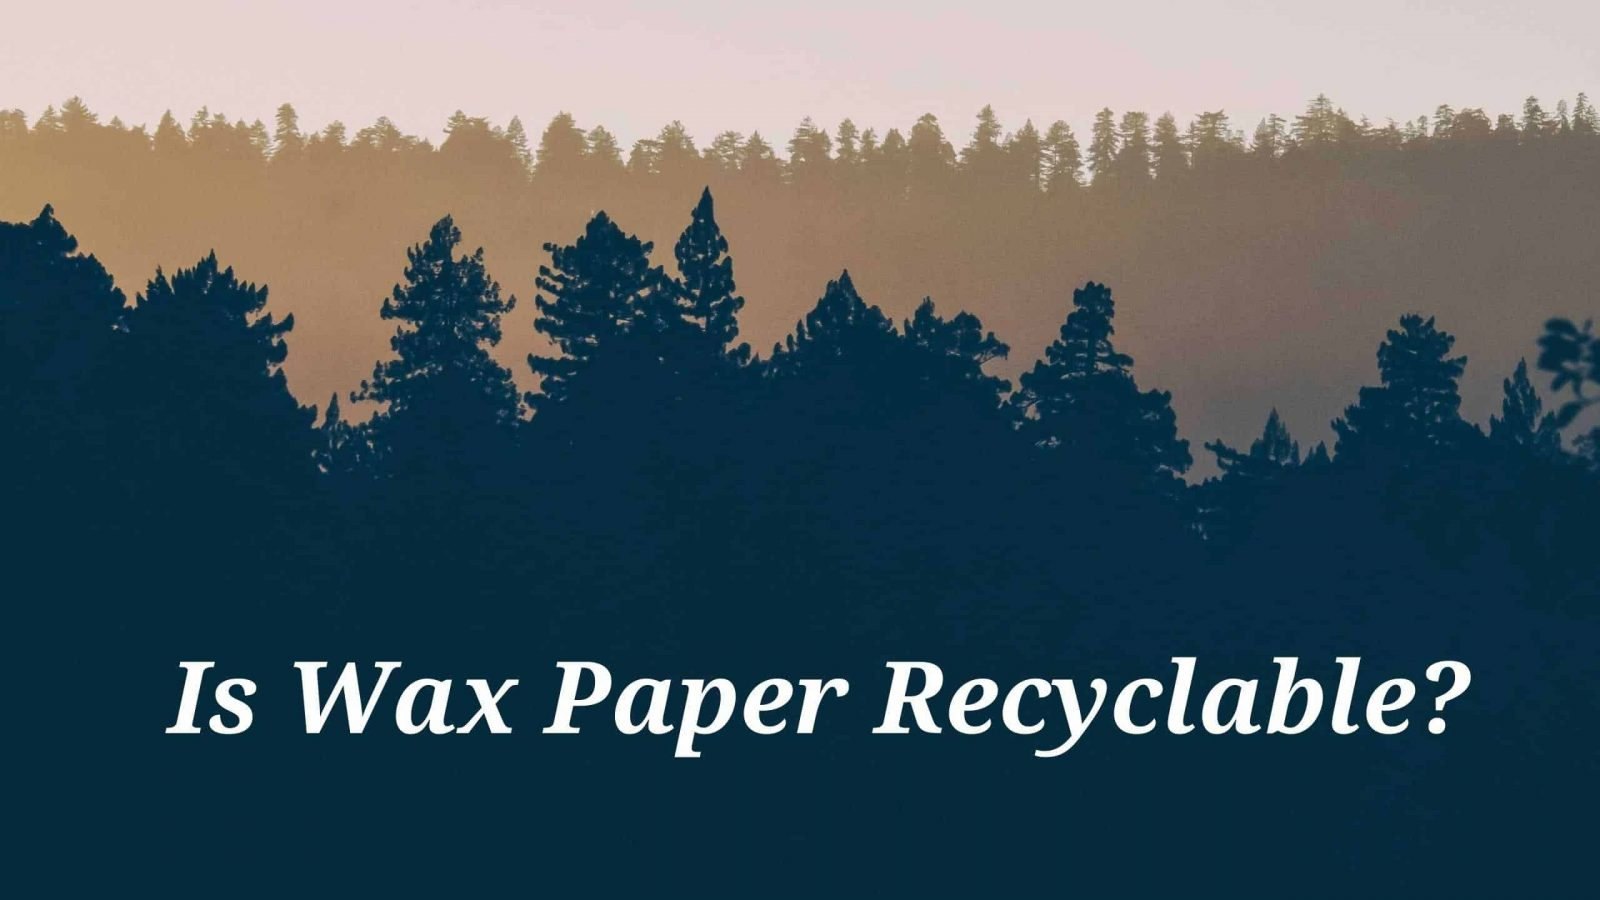 Is Wax Paper Recyclable?